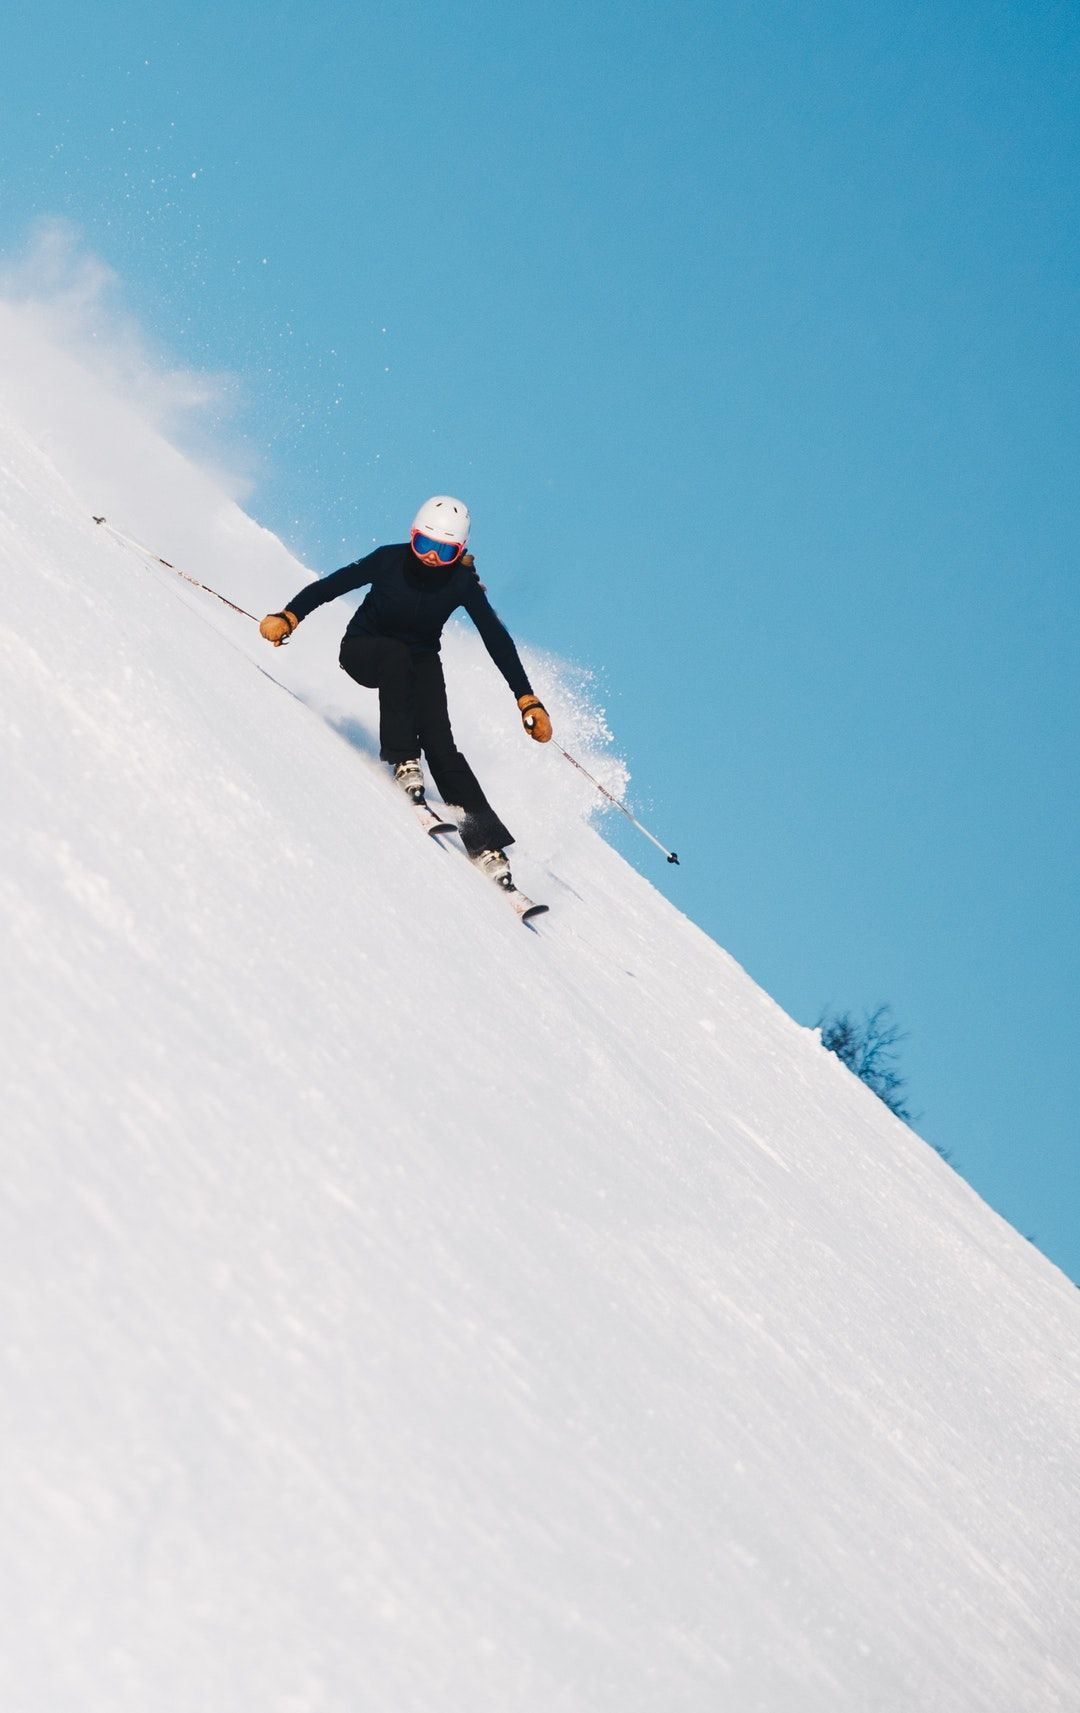 1080x1713 100+ Ski Pictures | Download Free Images & Stock Photos on Unsplash